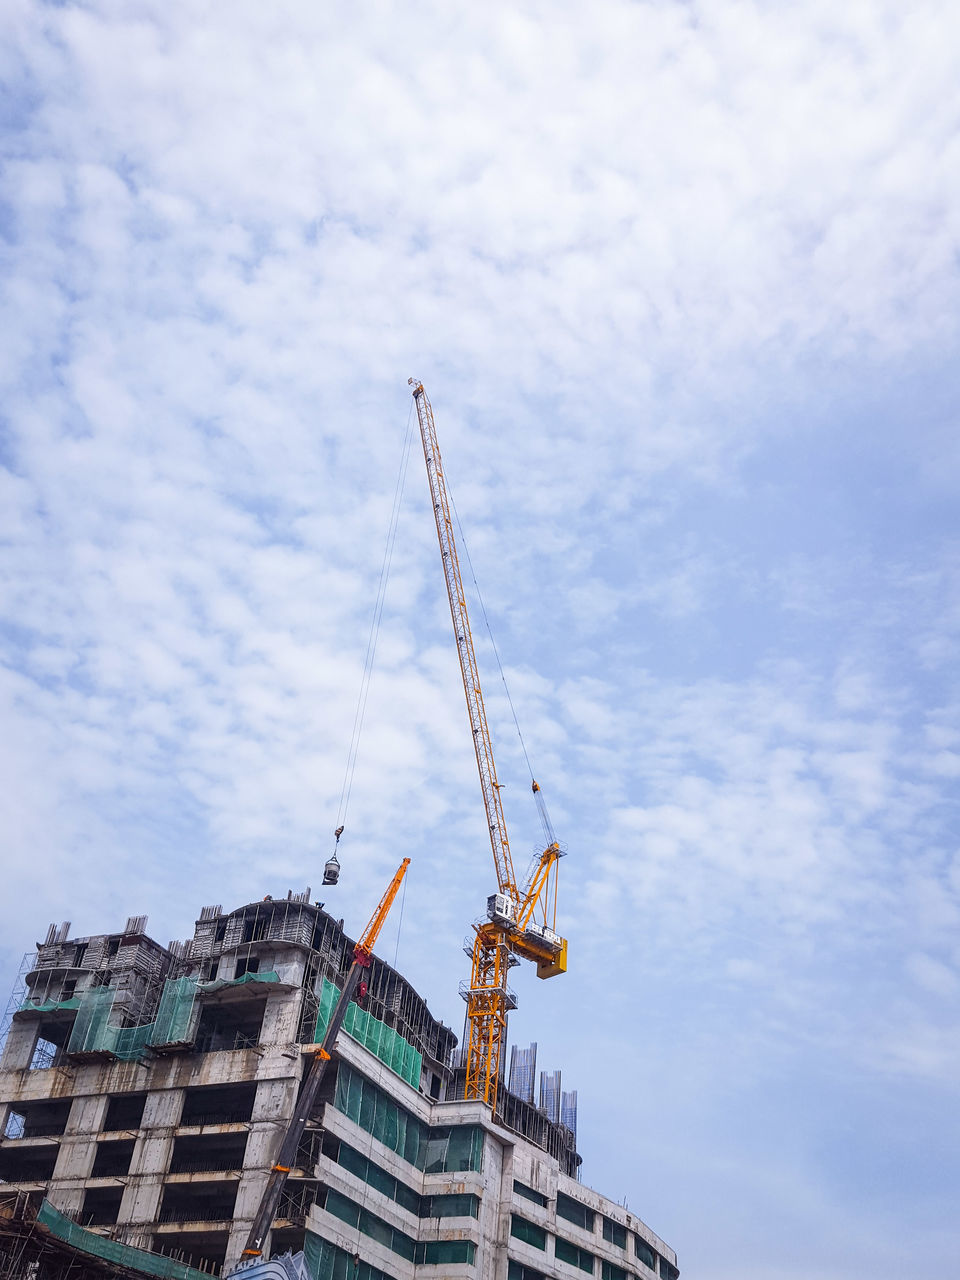 architecture, construction site, building exterior, construction, built structure, development, cloud - sky, sky, crane - construction machinery, low angle view, crane, building - activity, day, no people, progress, outdoors, city